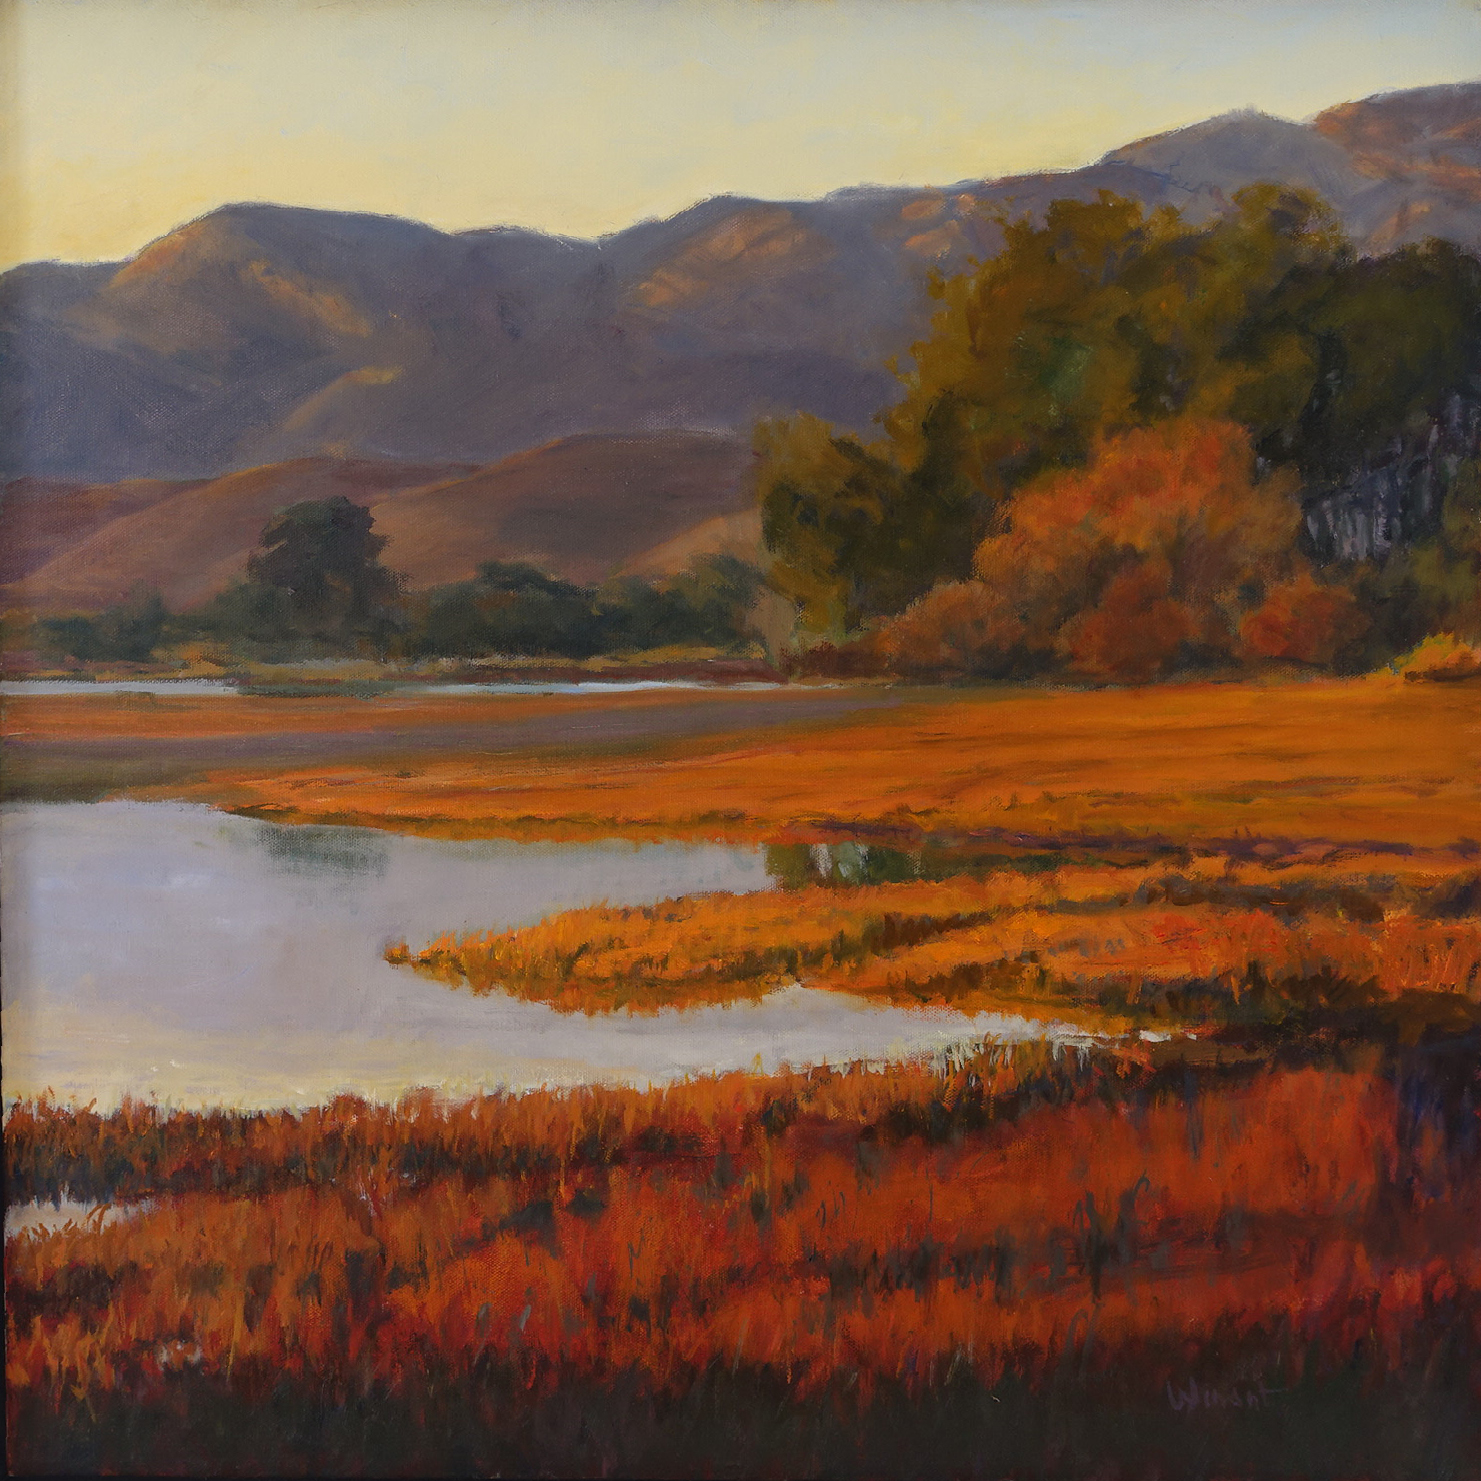 Fall Colors at Devereux, 30 x 30 inches